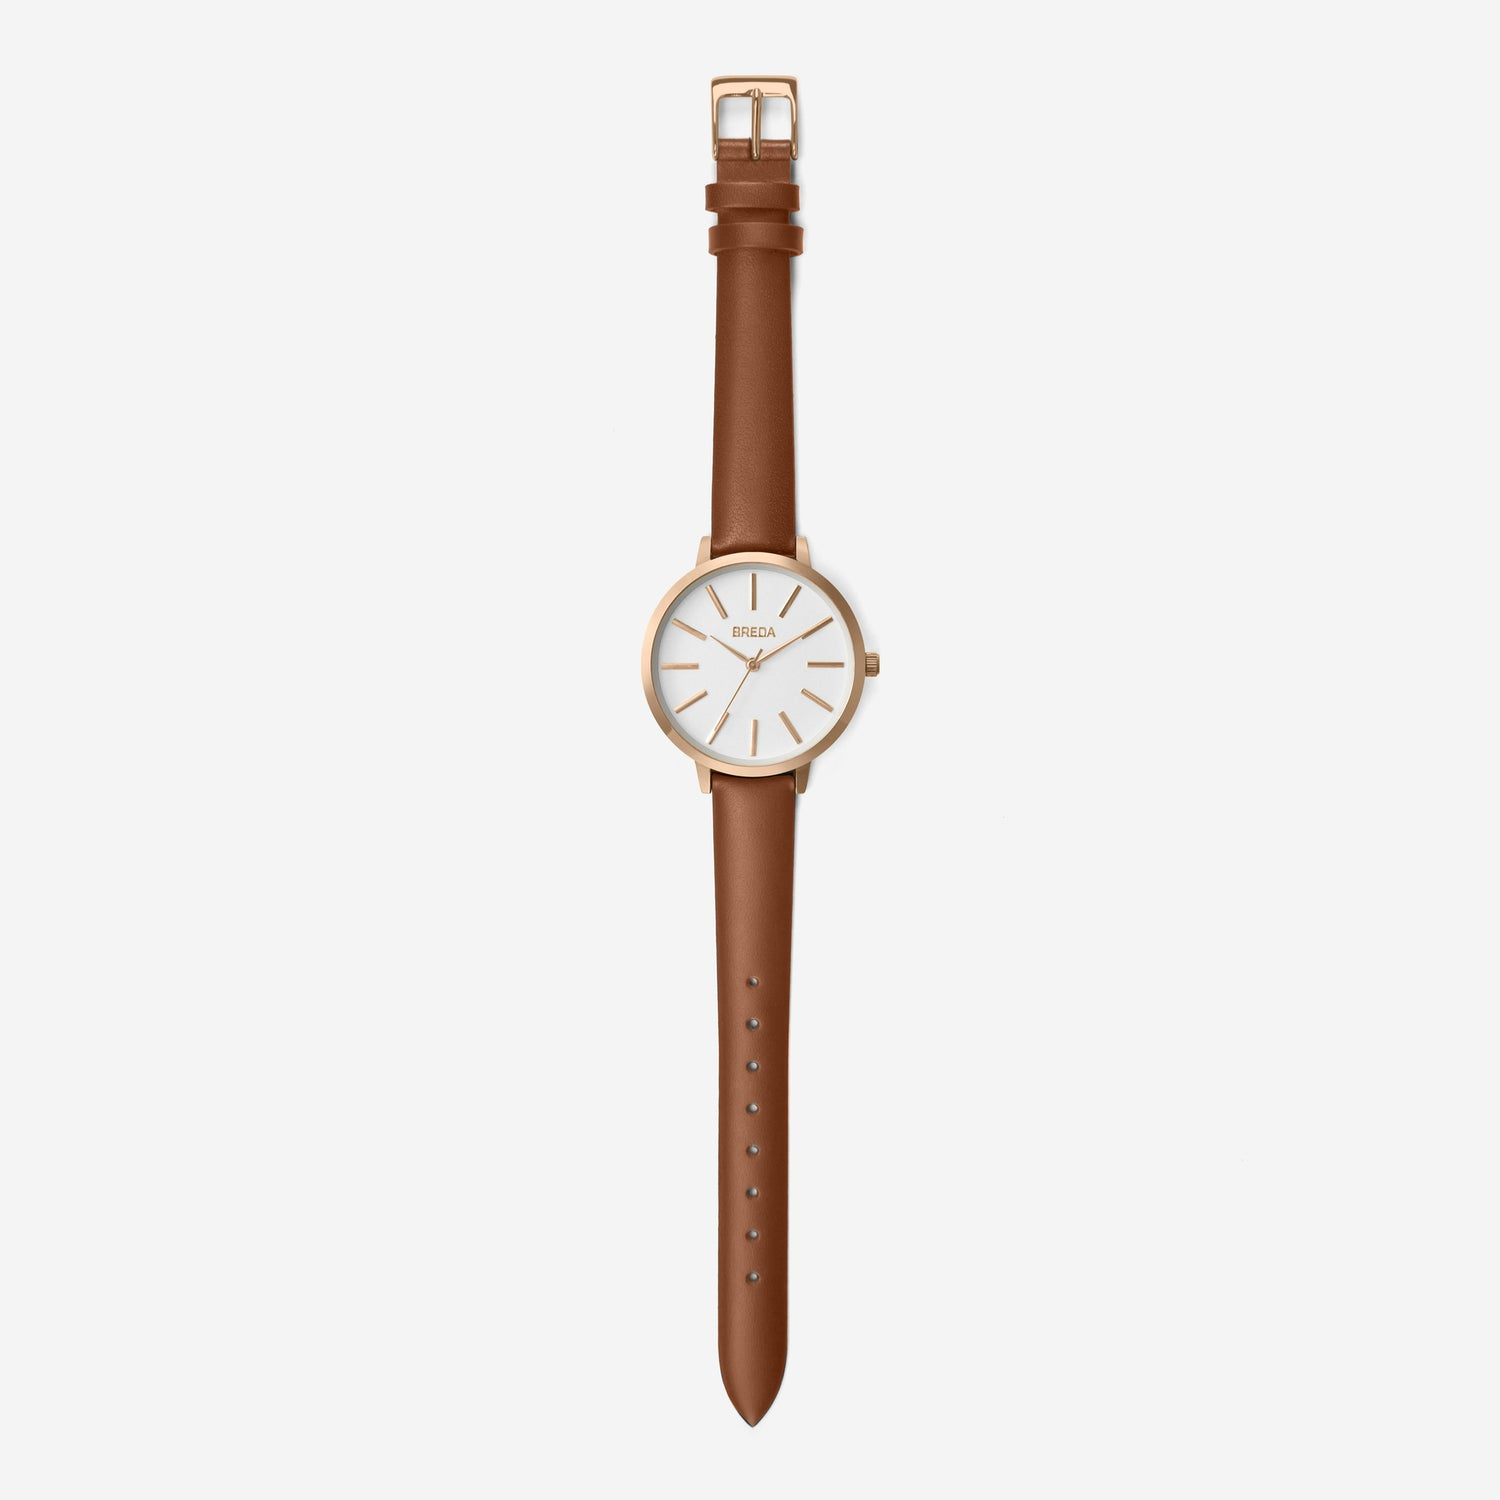 breda-joule-1722b-rosegold-brown-watch-long